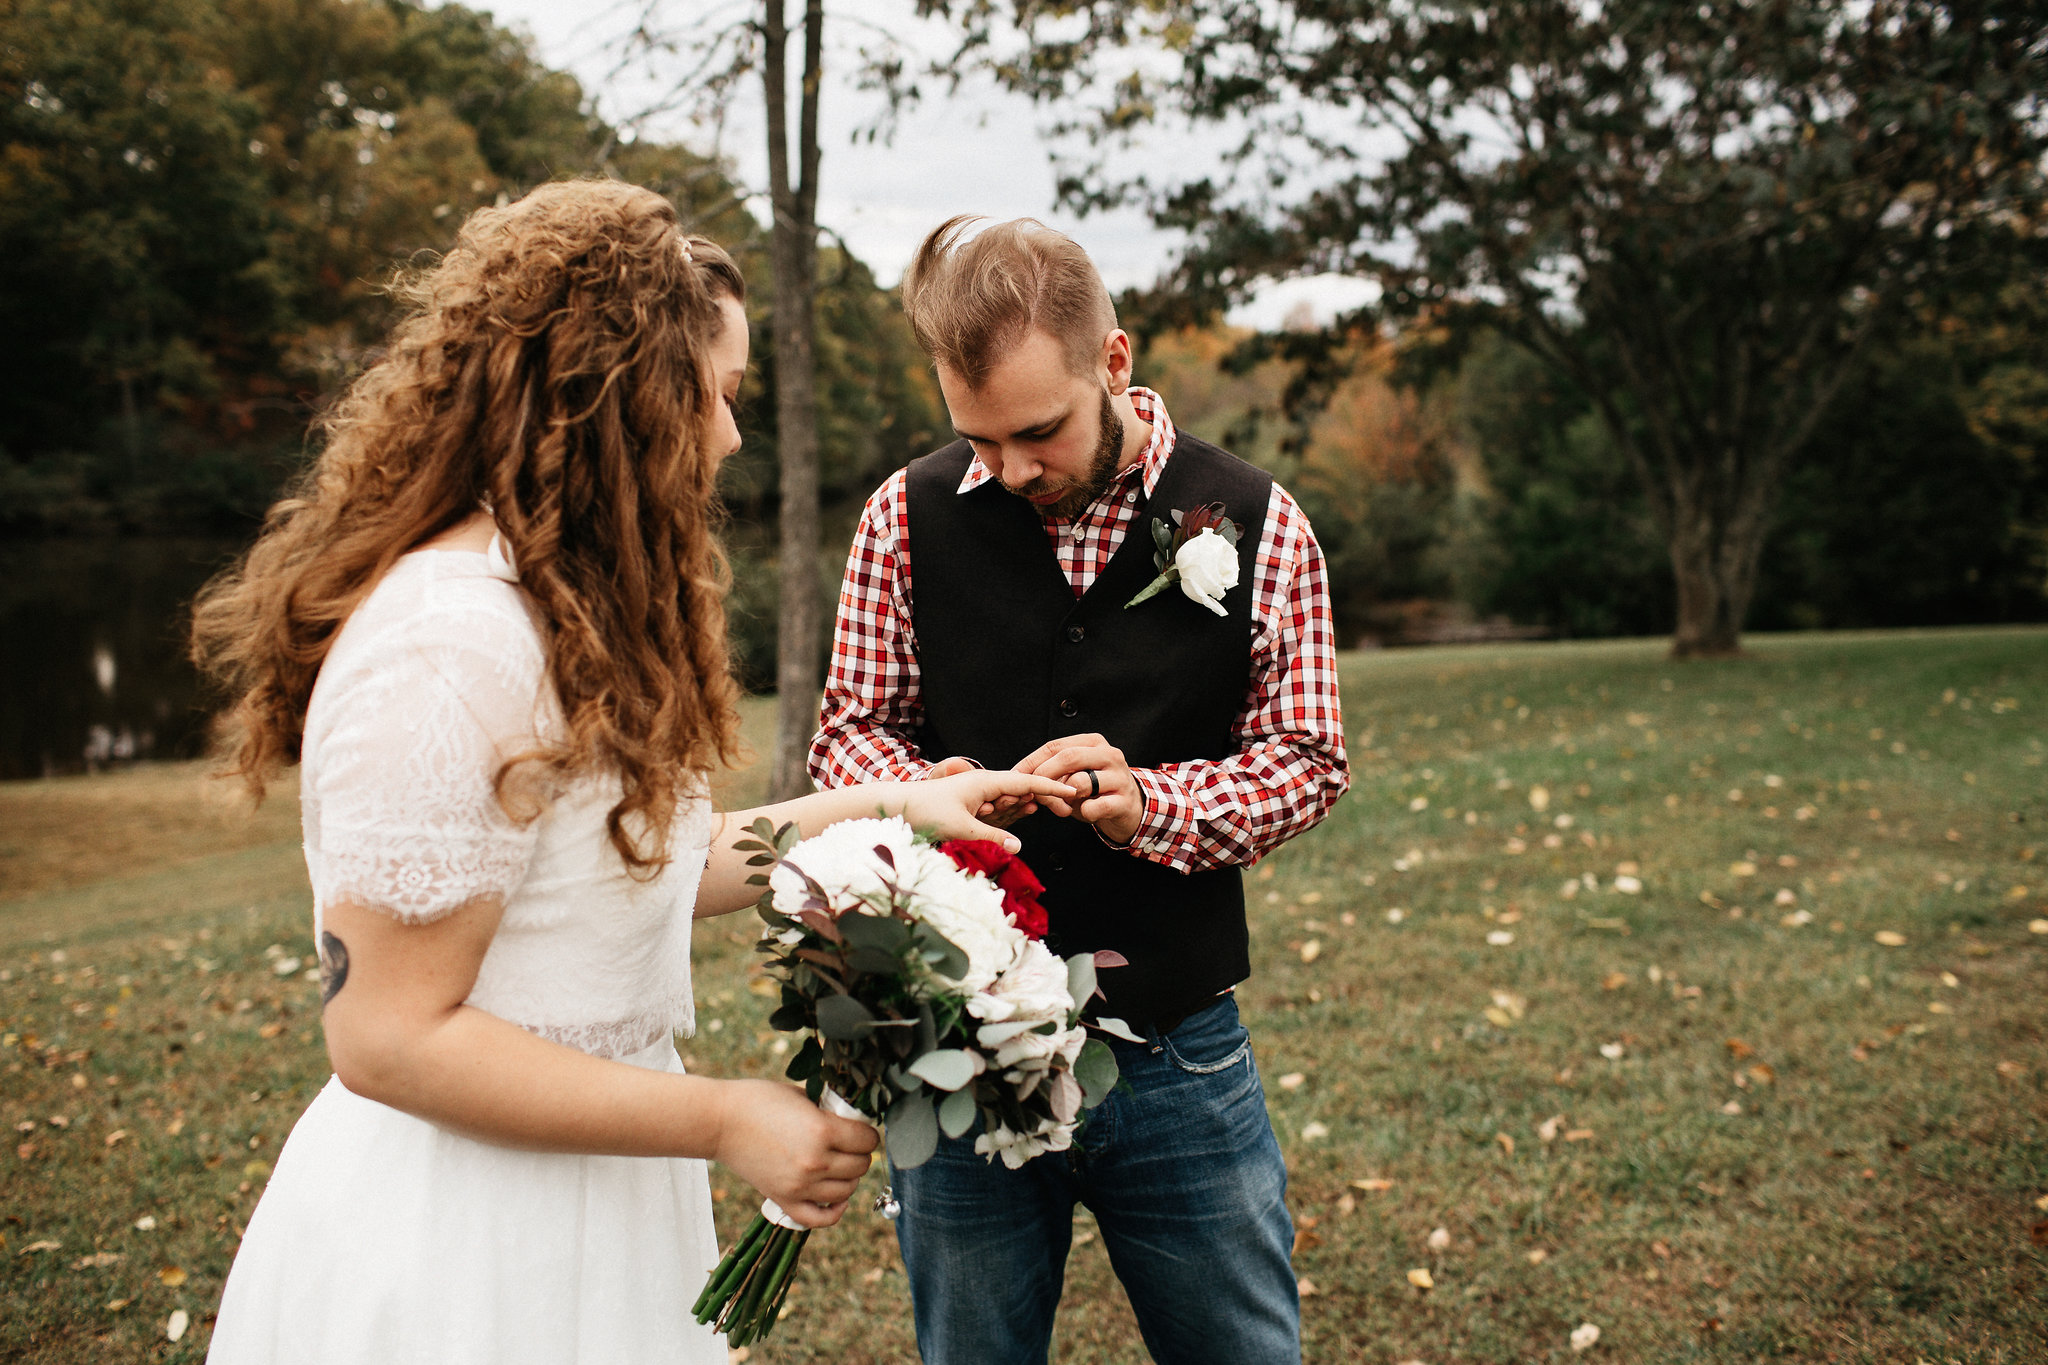 Caitlin&CodyMarried2017-11-03at19.19.39PM70.jpg